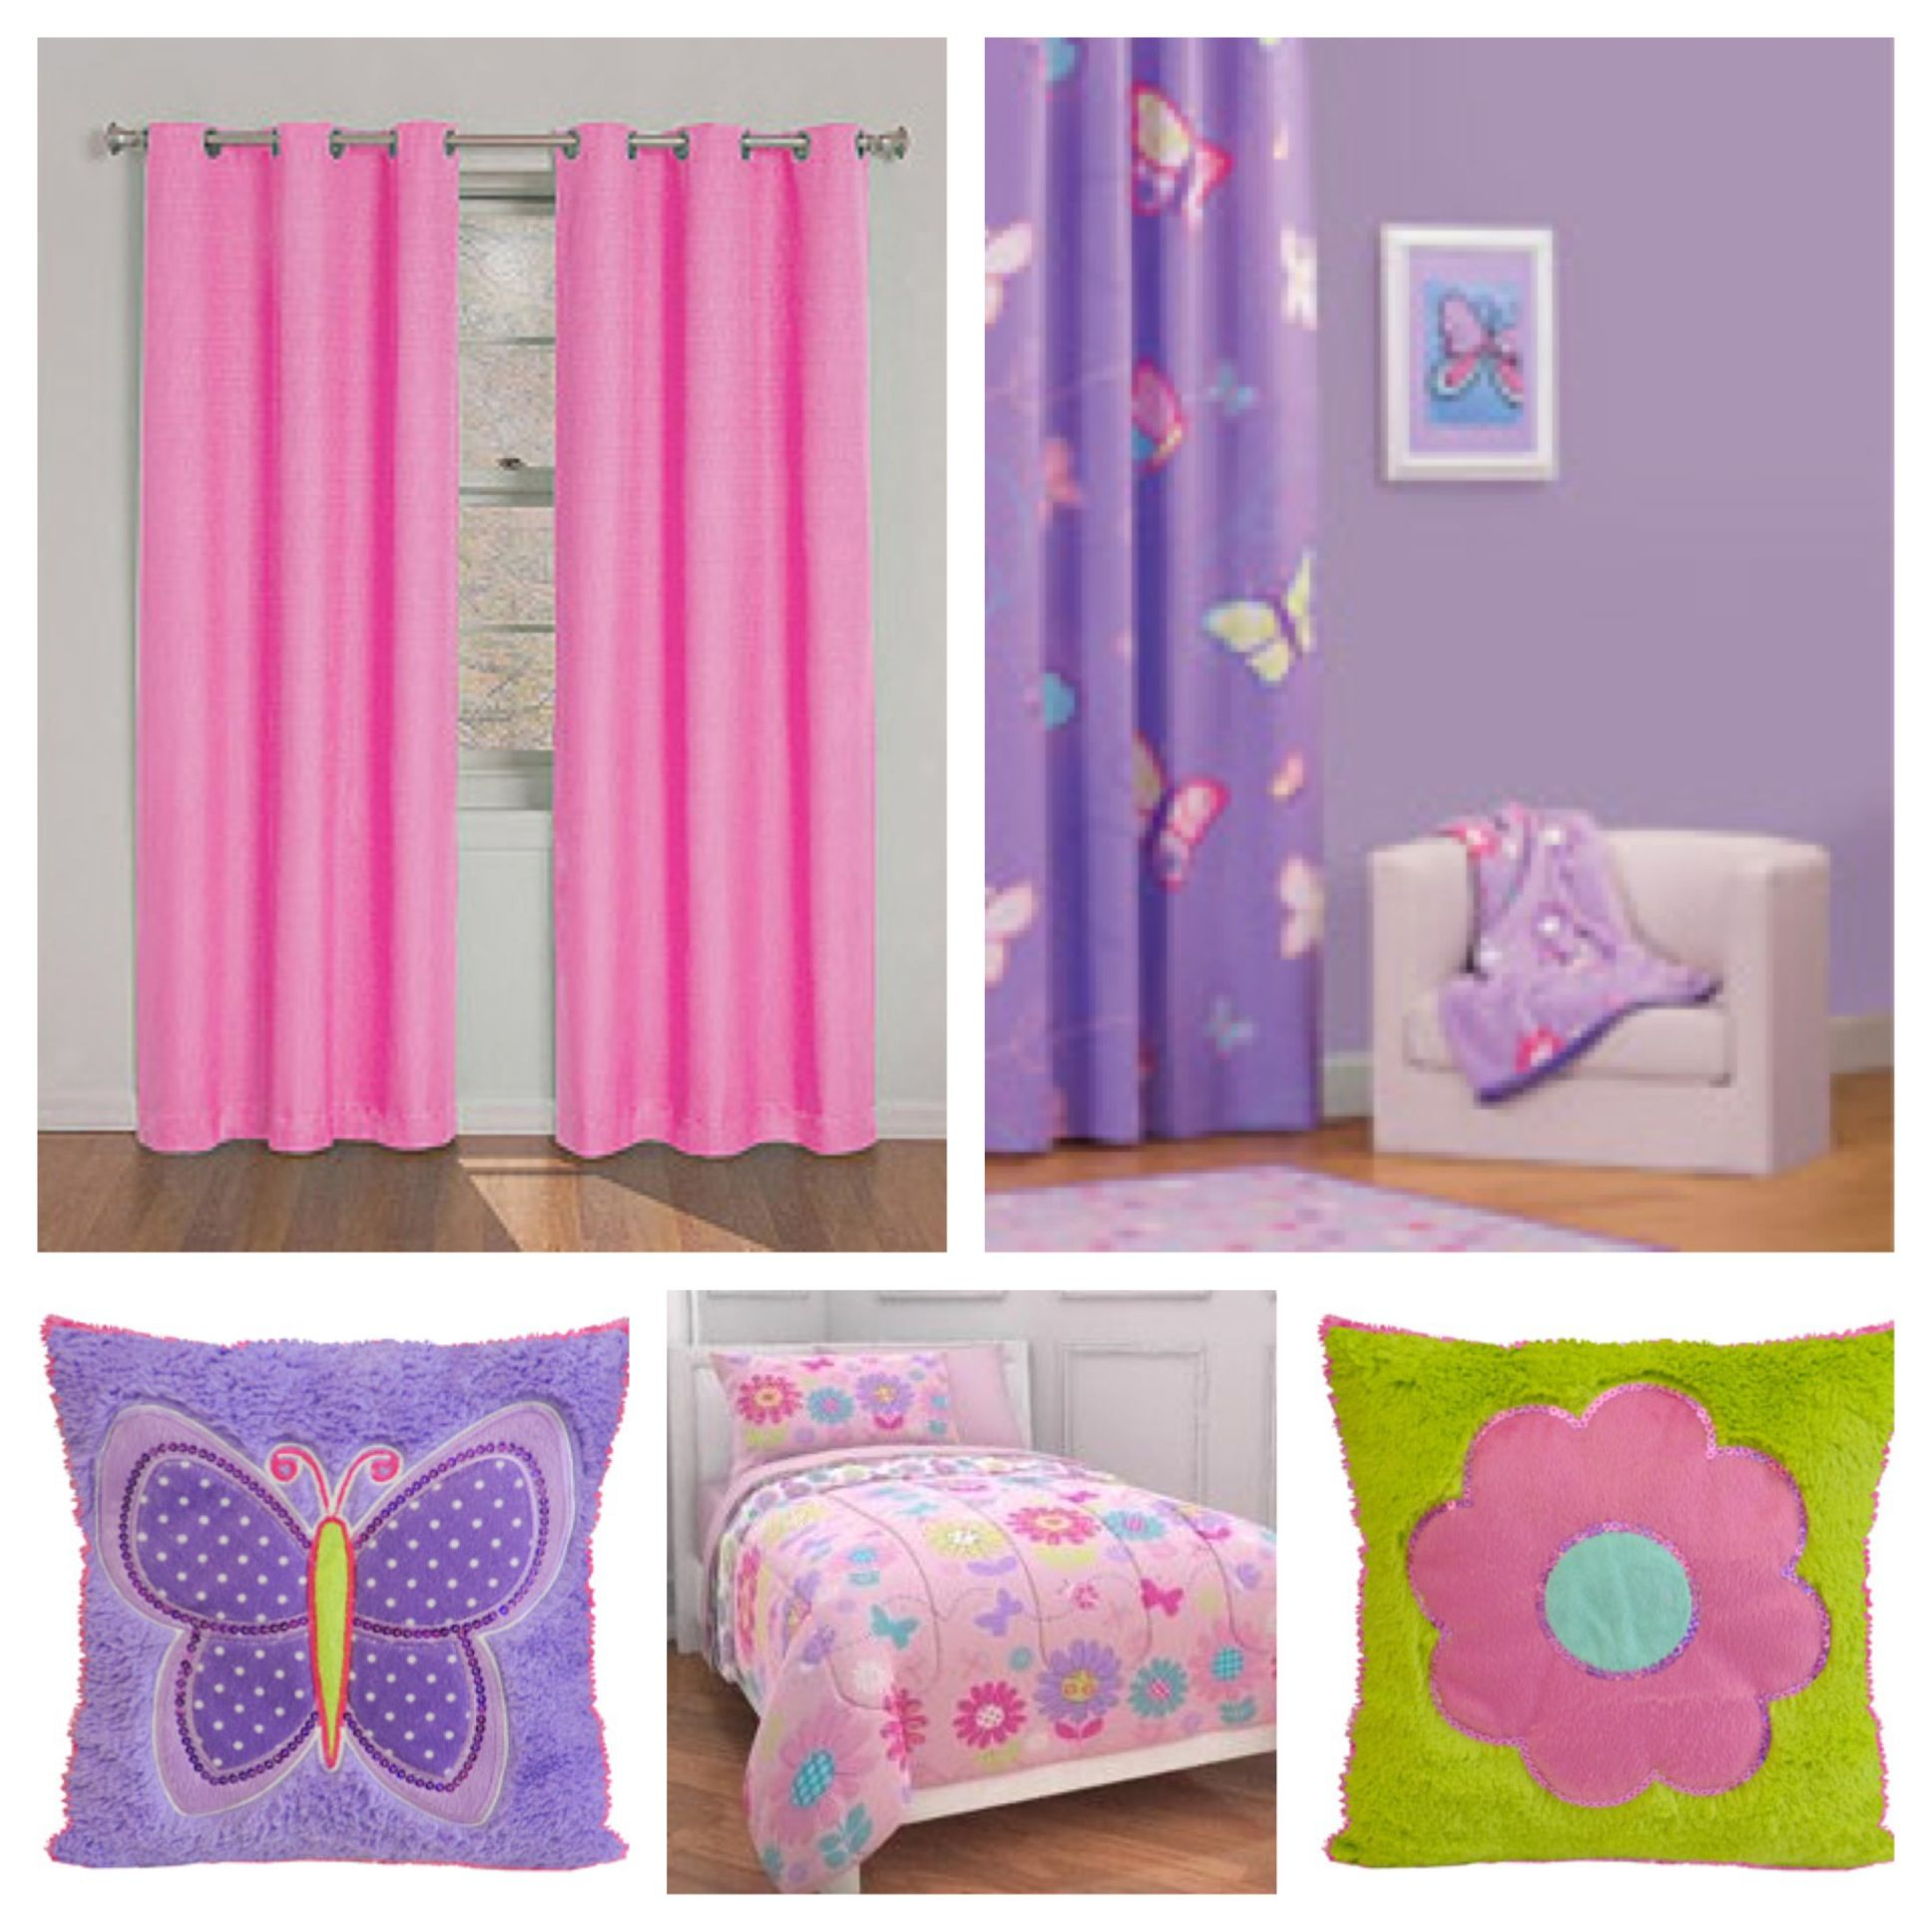 Orange Green Purple Room: Color Palette. Purple Wall, Pink Curtains And Bedding